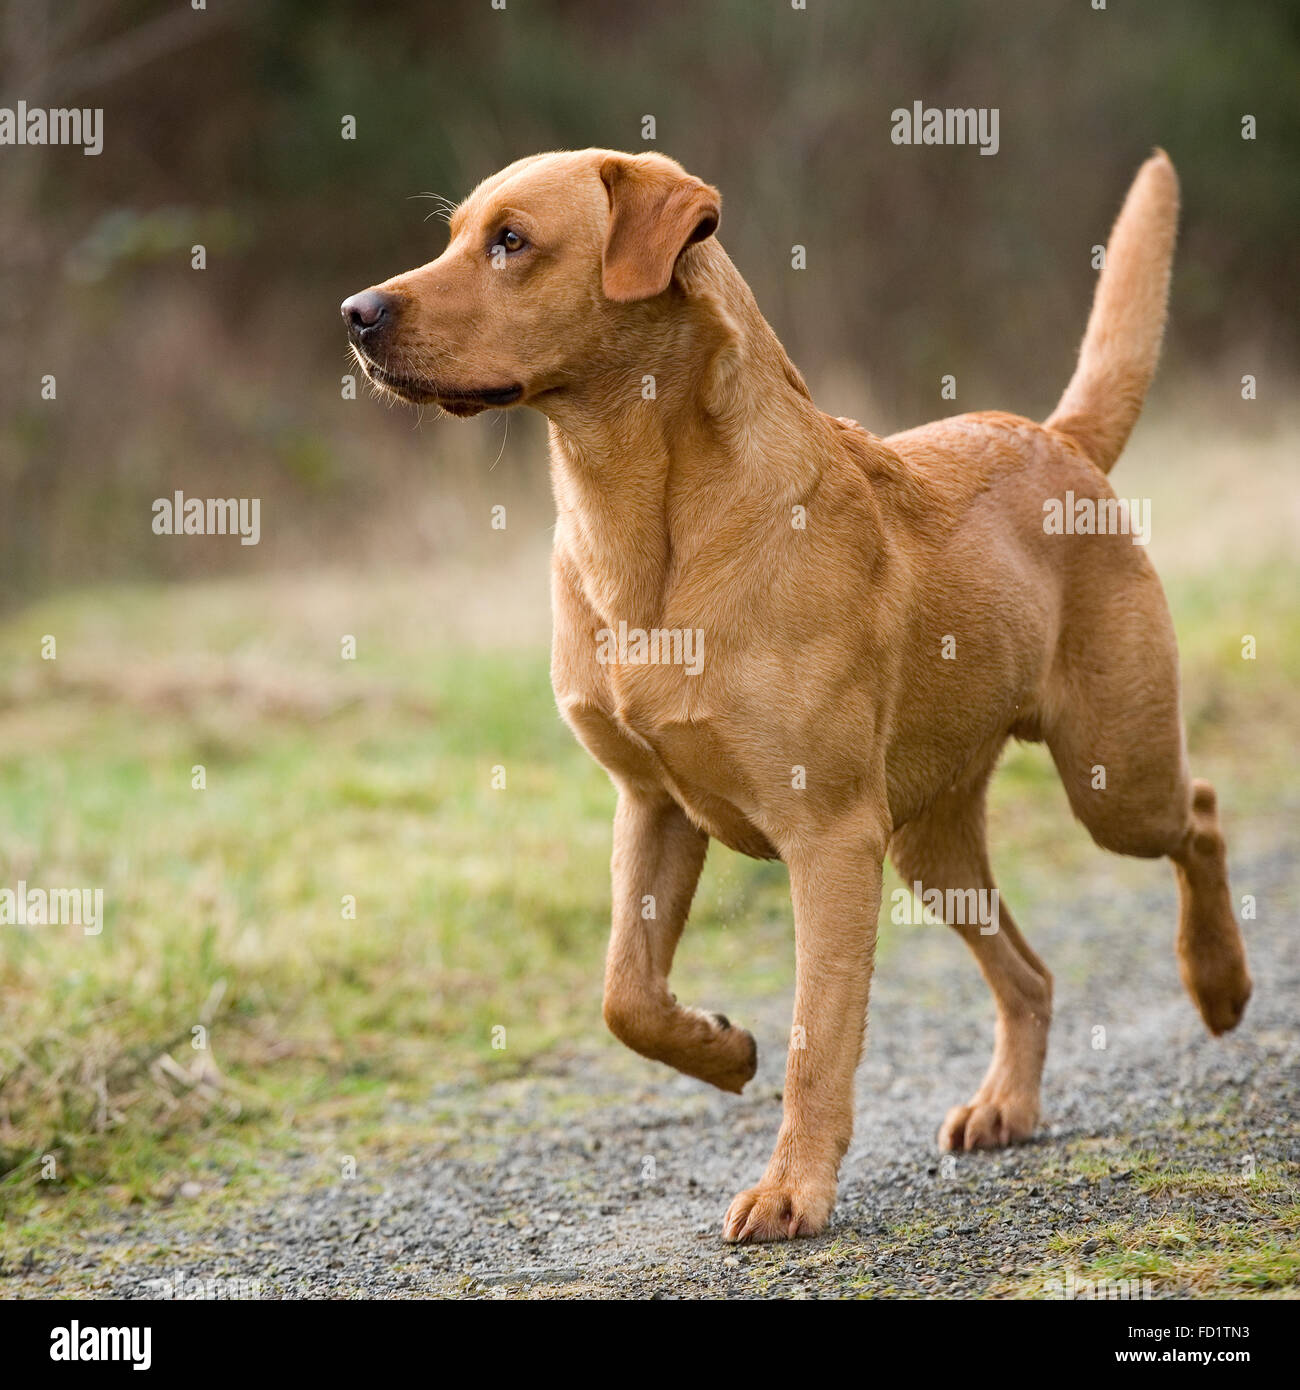 Red Fox Dog Stock Photos & Red Fox Dog Stock Images - Alamy